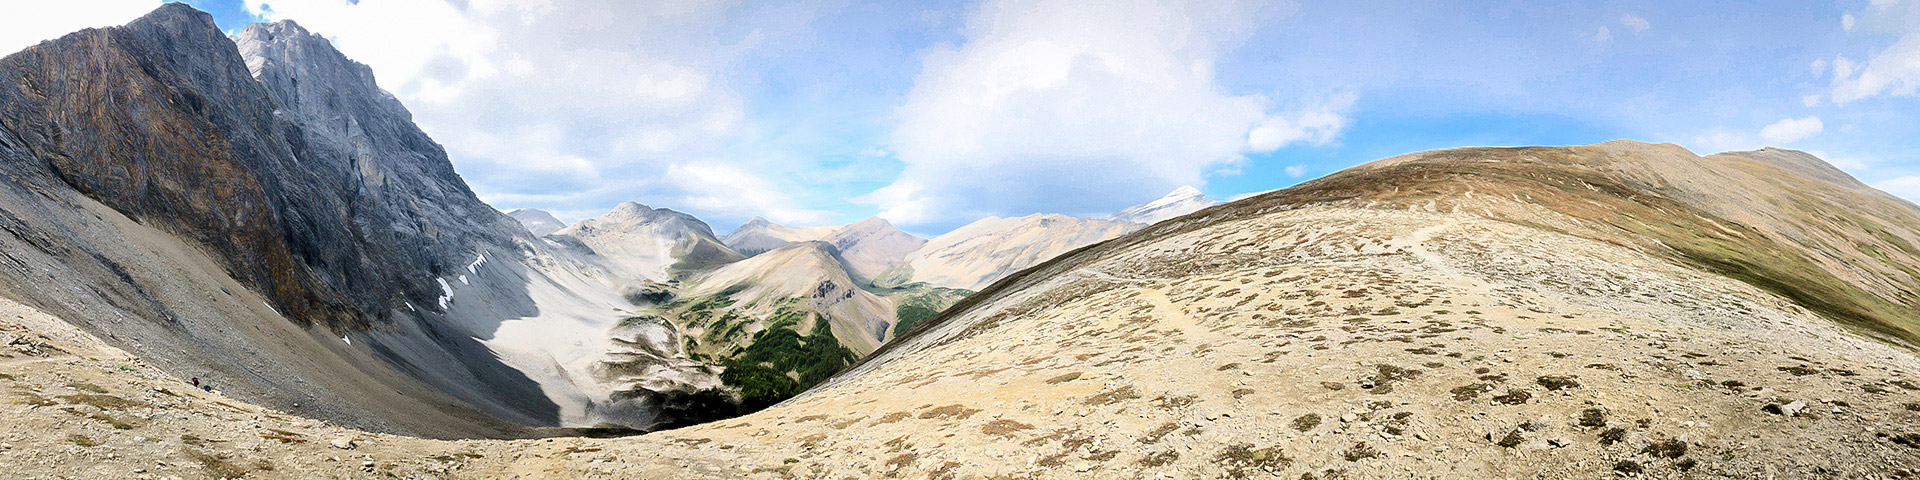 Panorama of the Guinn's Pass hike from Kananaskis near Canmore